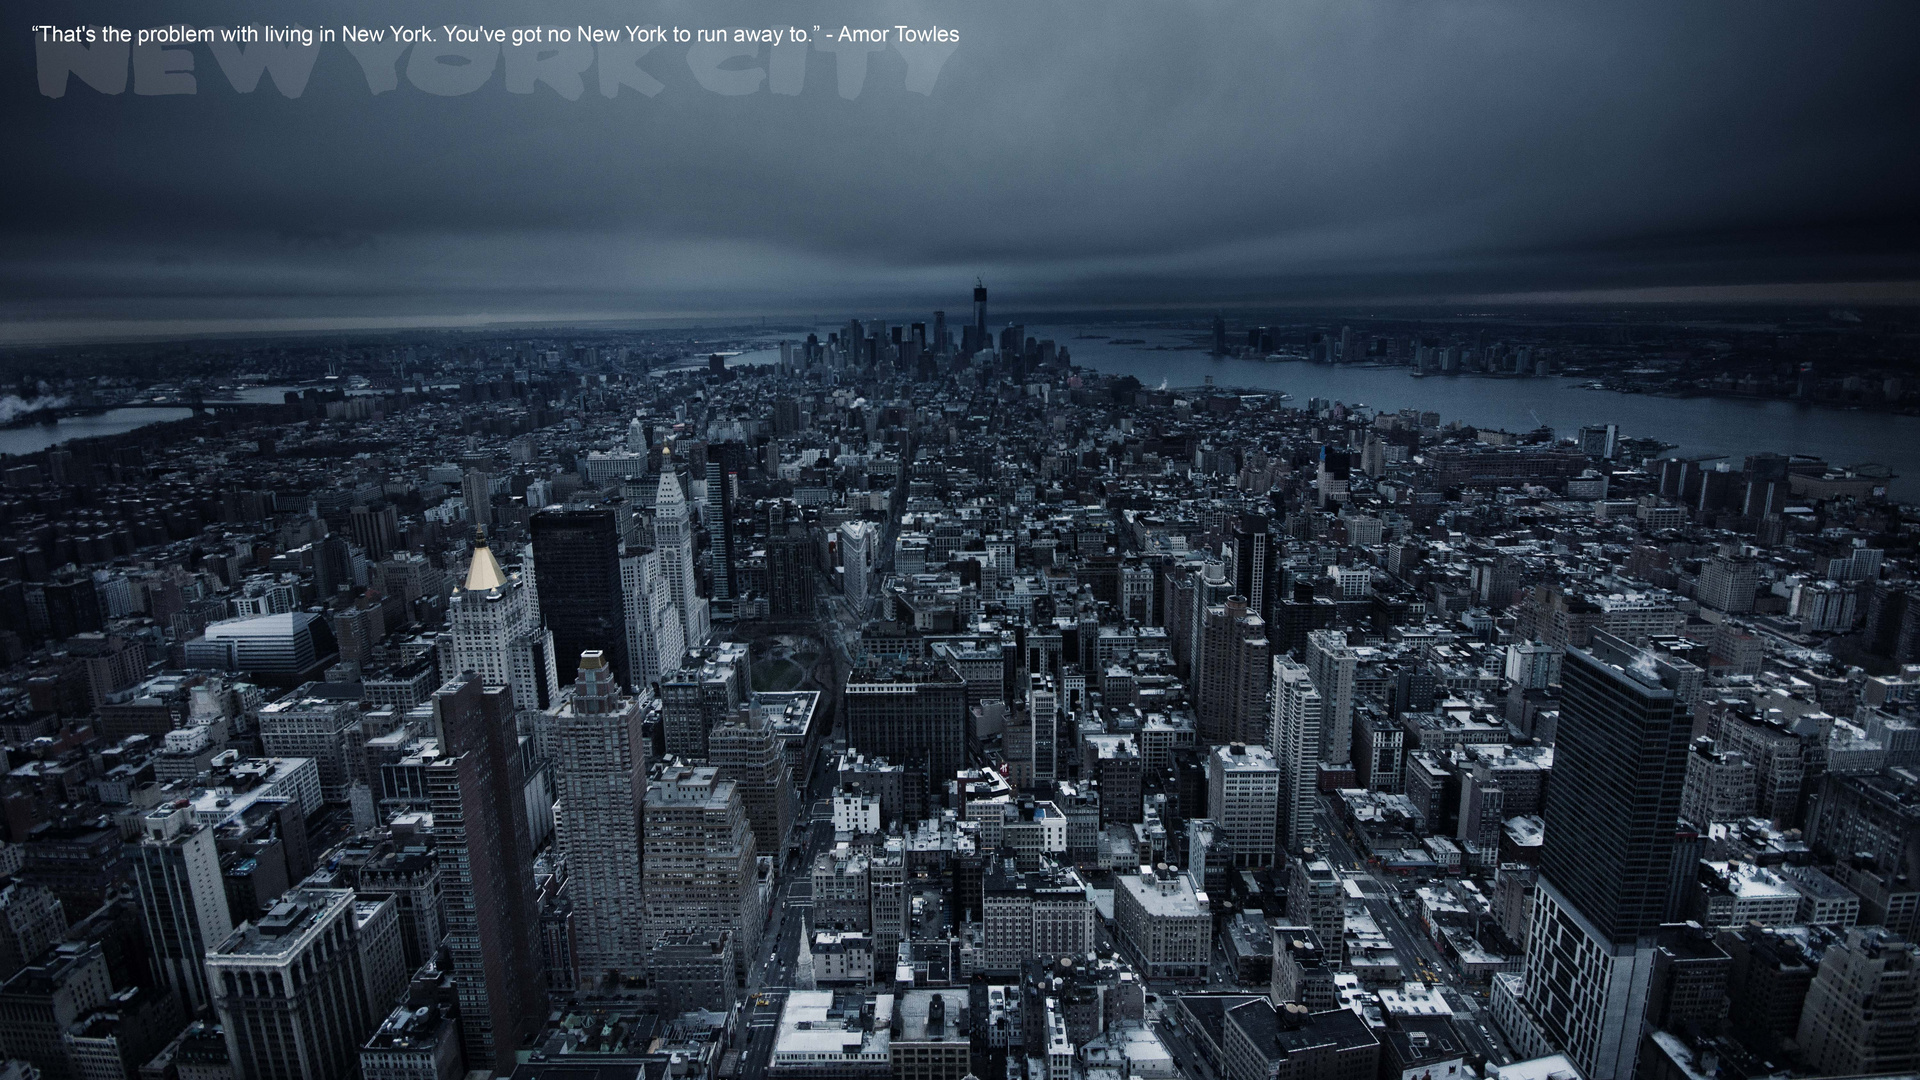 Empire State mal anders